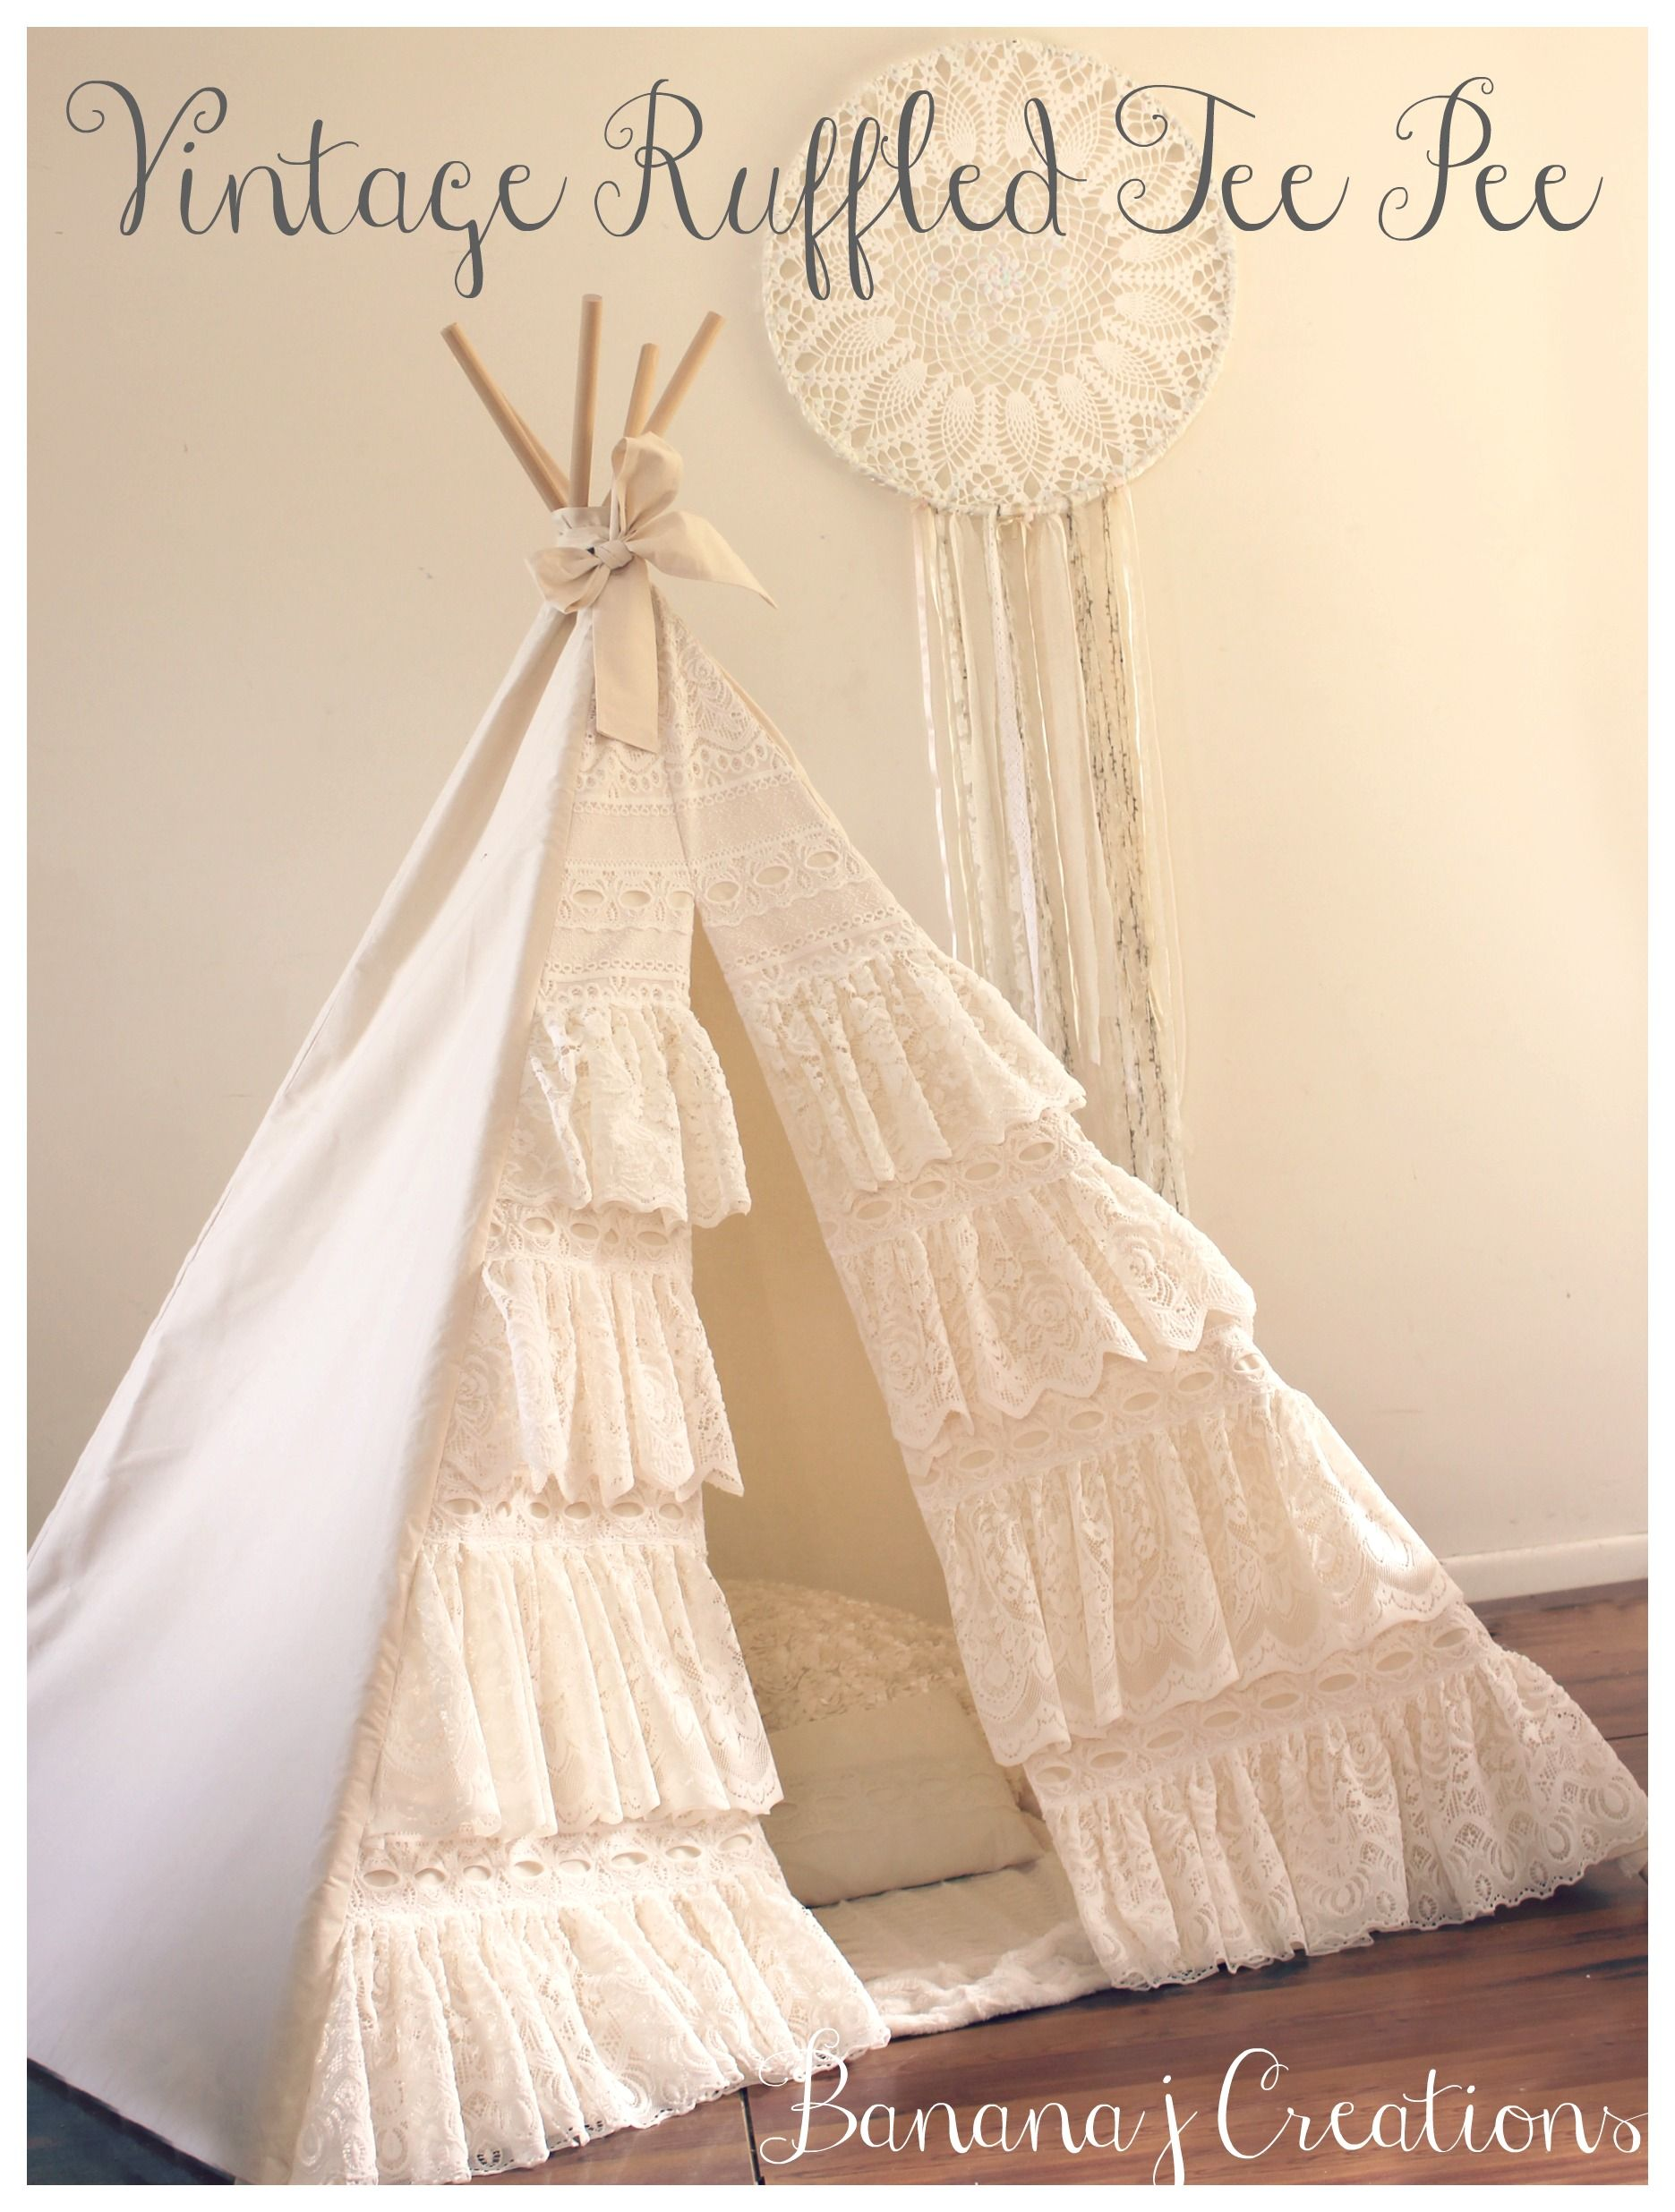 Ruffled Lace Tee Pee With Images Kids Teepee Tent